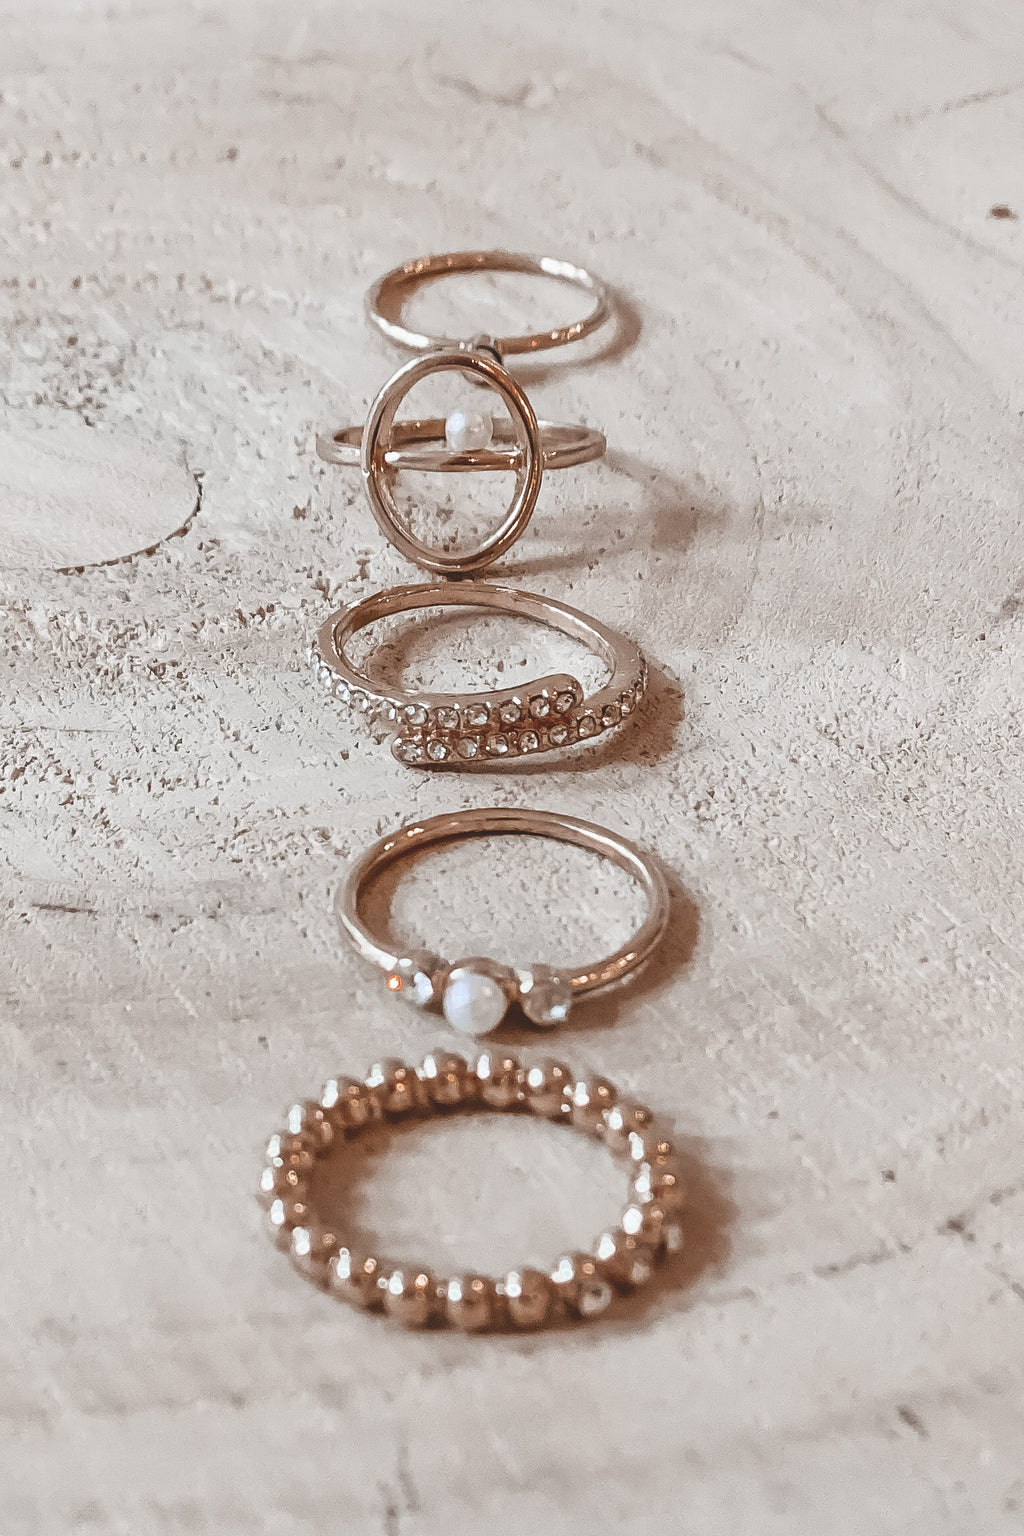 In The Loop Gold Stackable Rings